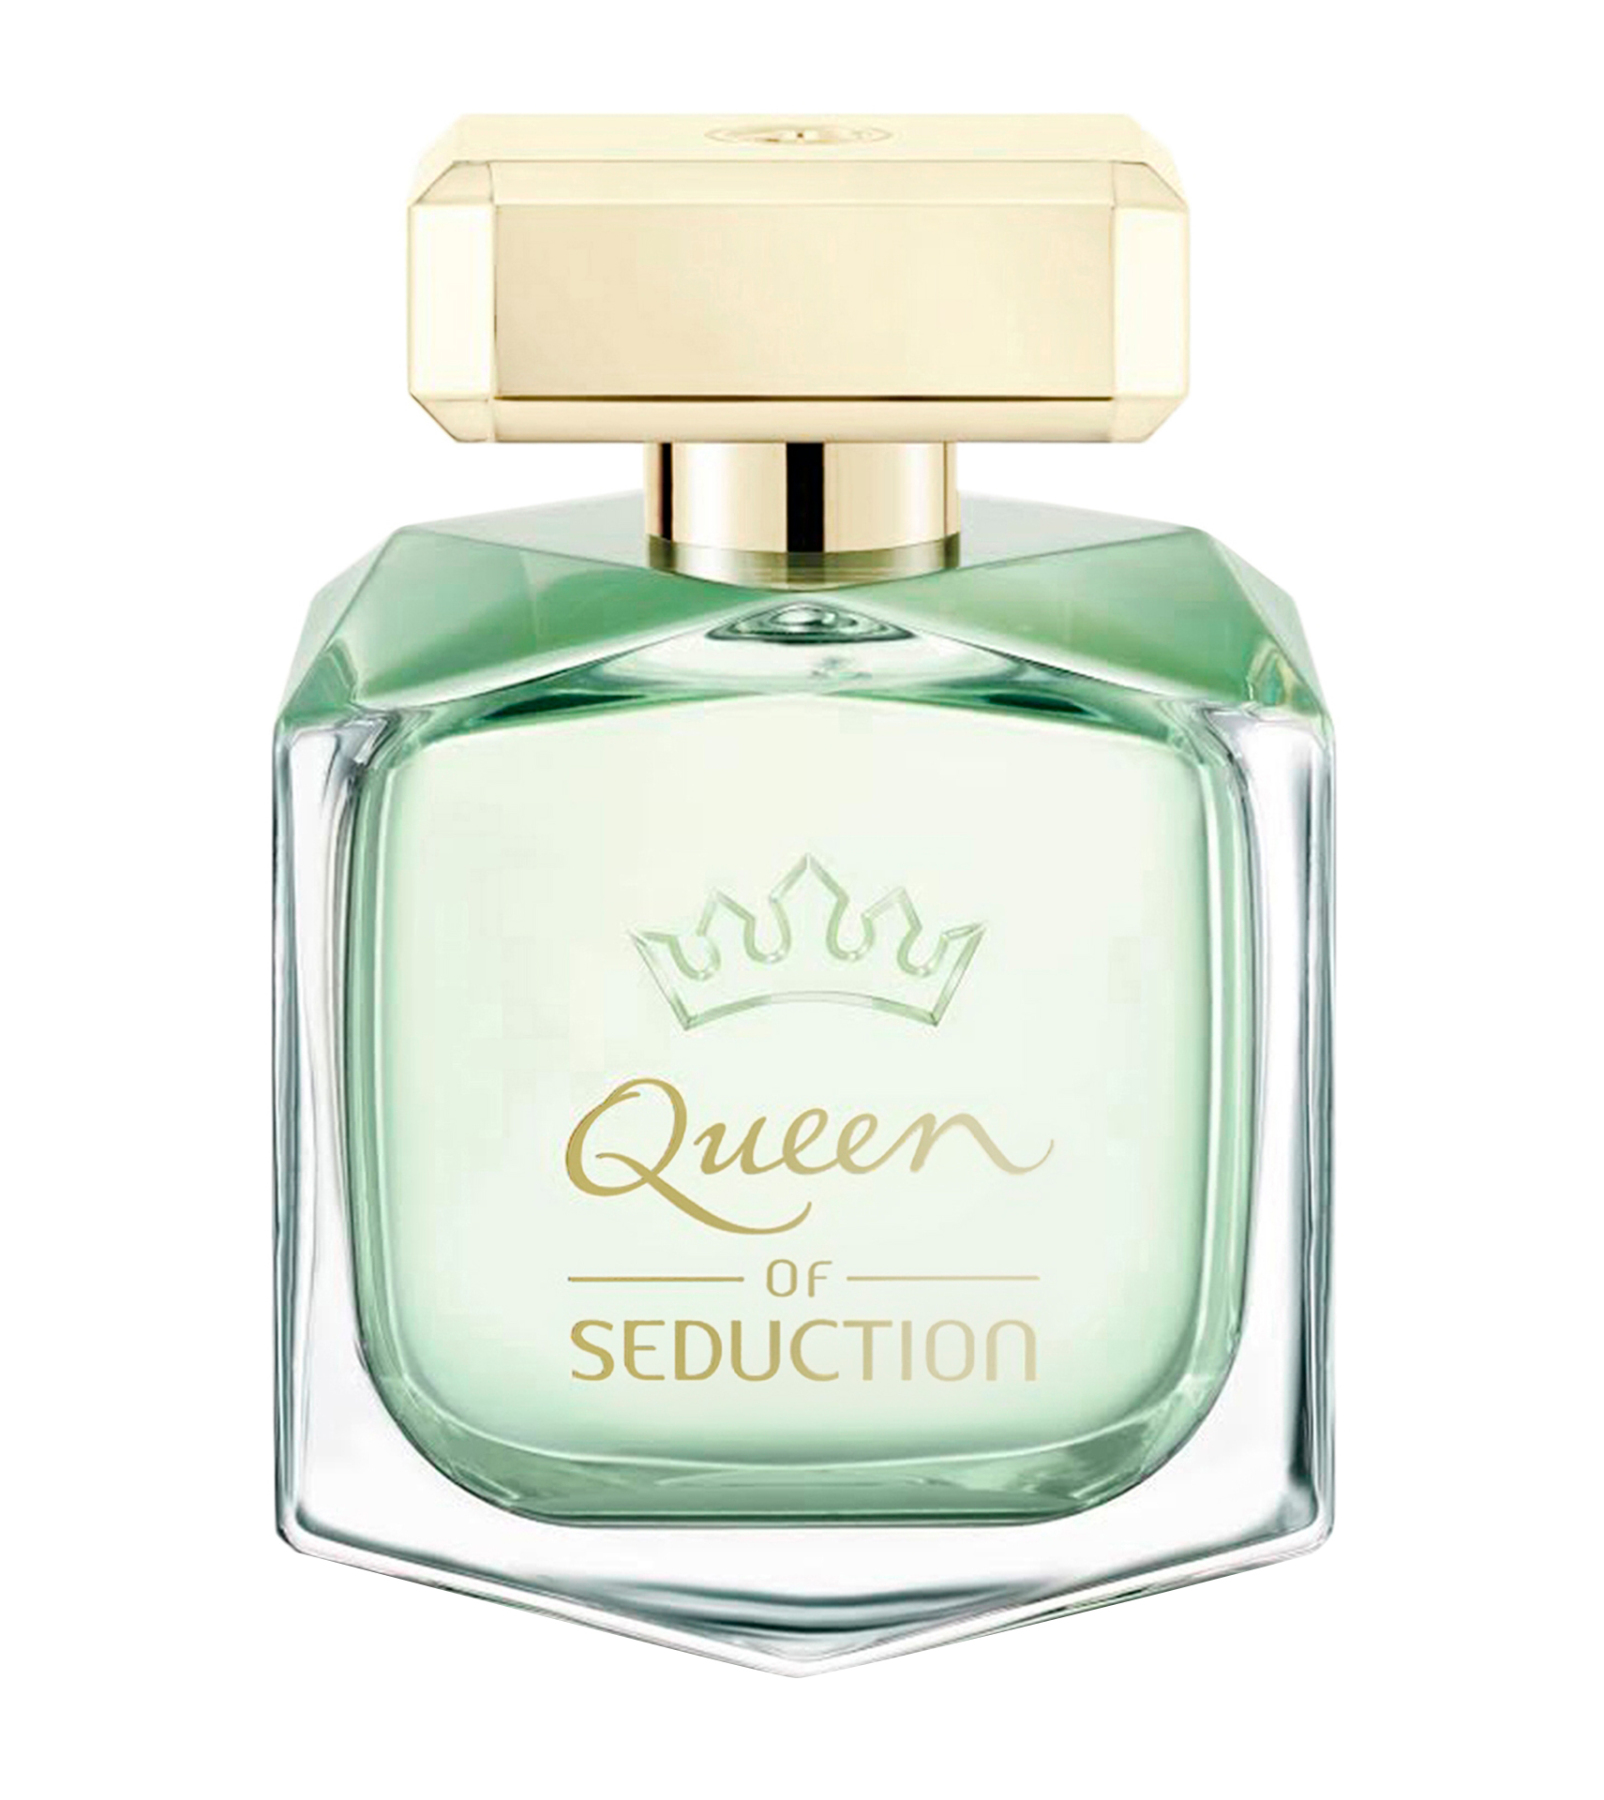 Perfume Antonio Banderas Queen Of Seduction Eau De Toilette Perfume 80 Ml.